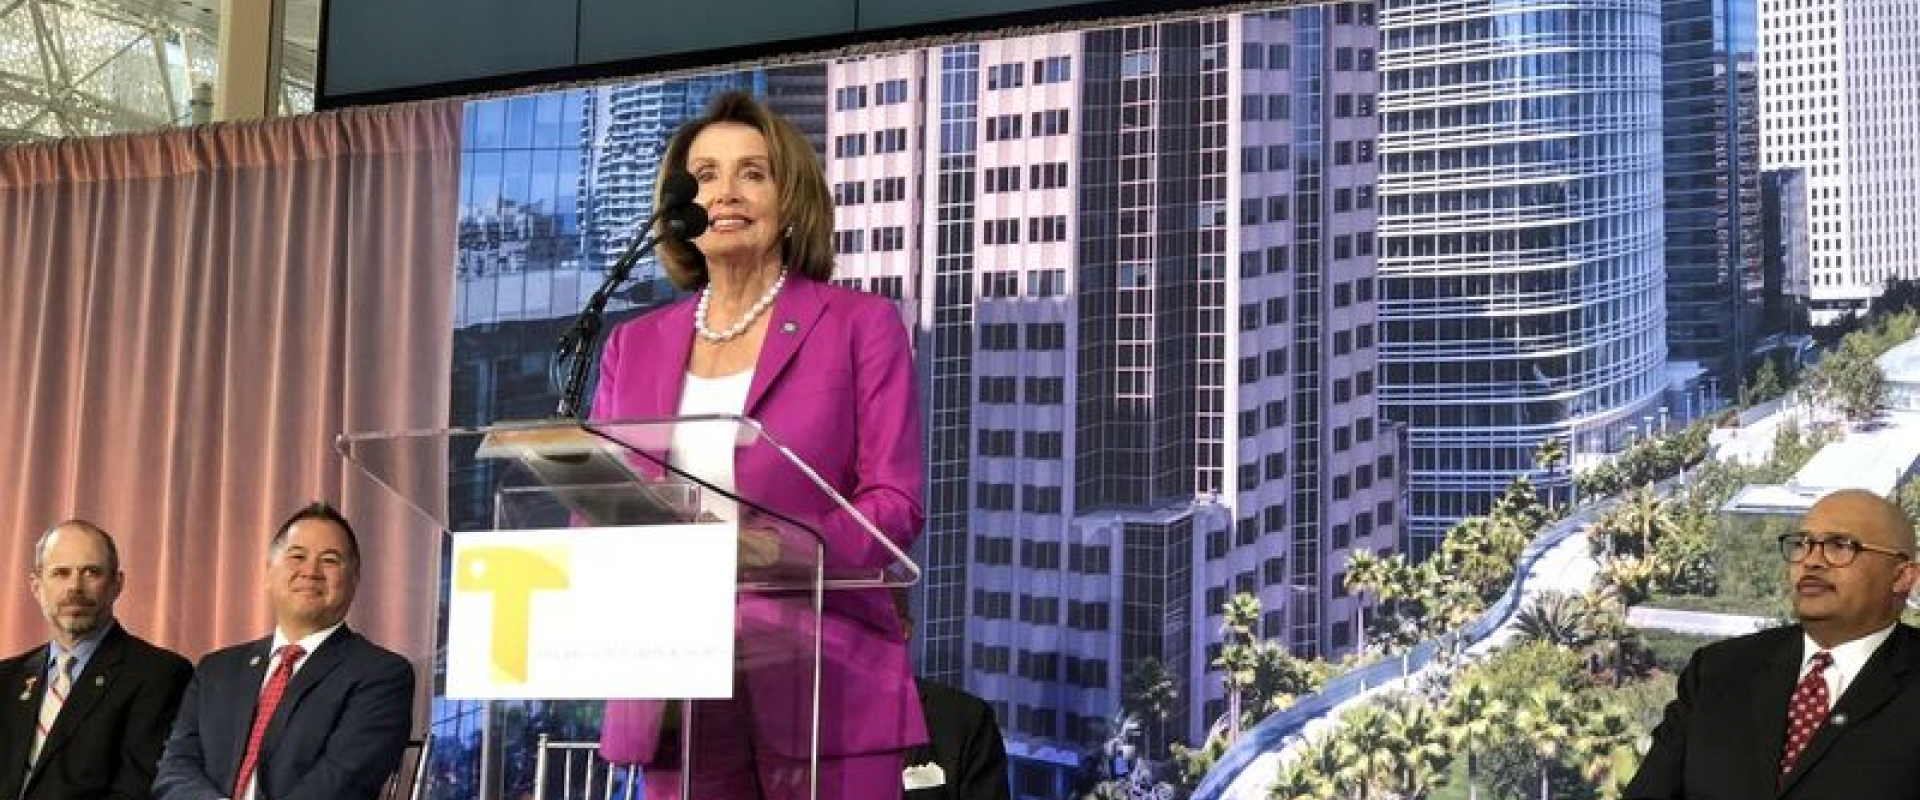 Congresswoman Pelosi joins Mayors London Breed and Willie Brown at the opening of the Salesforce Transit Center, the Bay Area's new 21st Century Transit Hub. At the ribbon cutting, Pelosi thanked the Bay Area community, Building Trades workers, architects